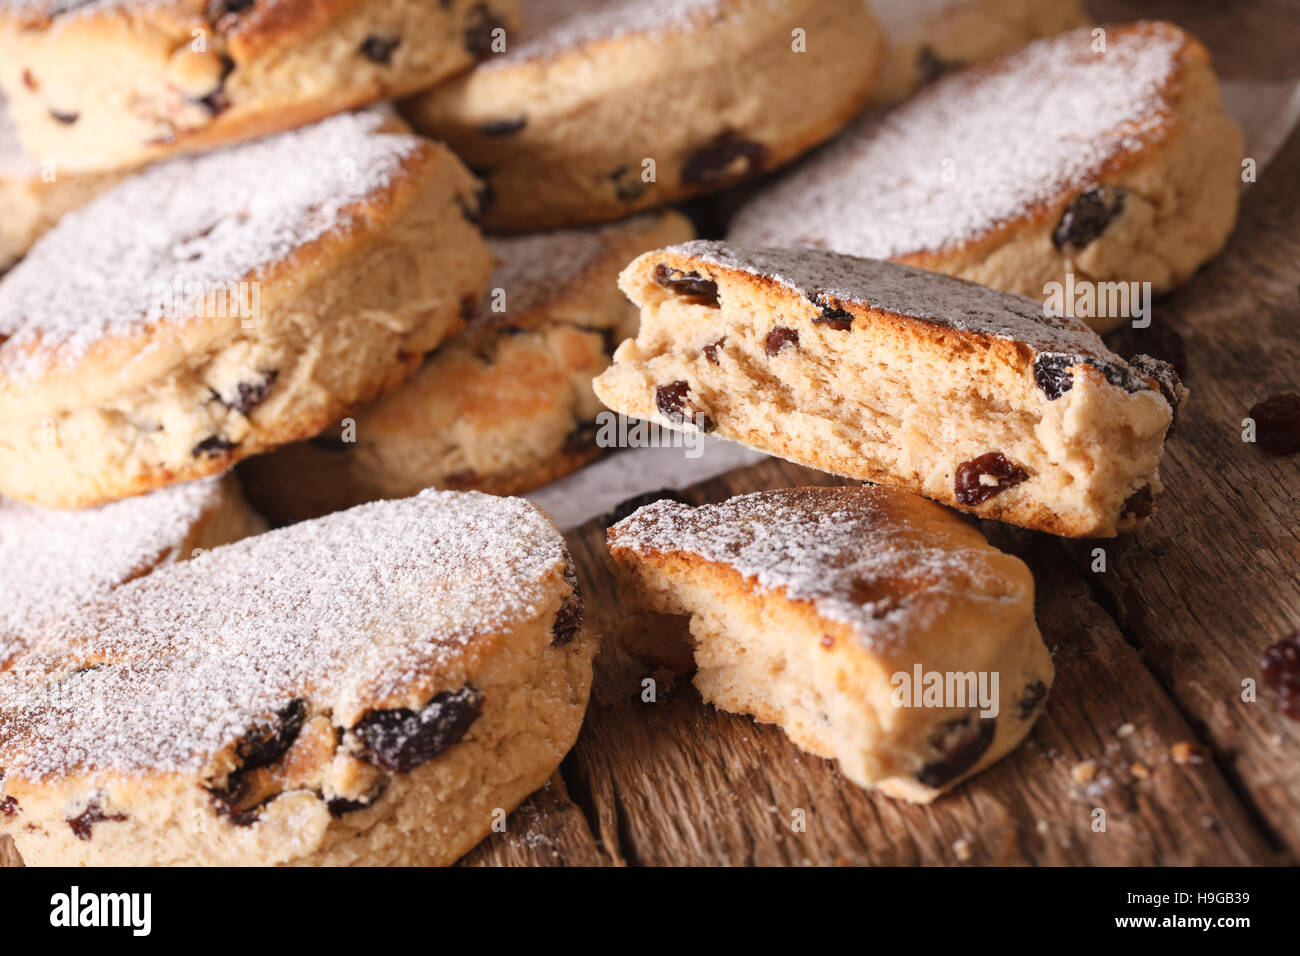 Traditional Welsh cakes with raisins and powdered sugar macro on the table. Horizontal - Stock Image